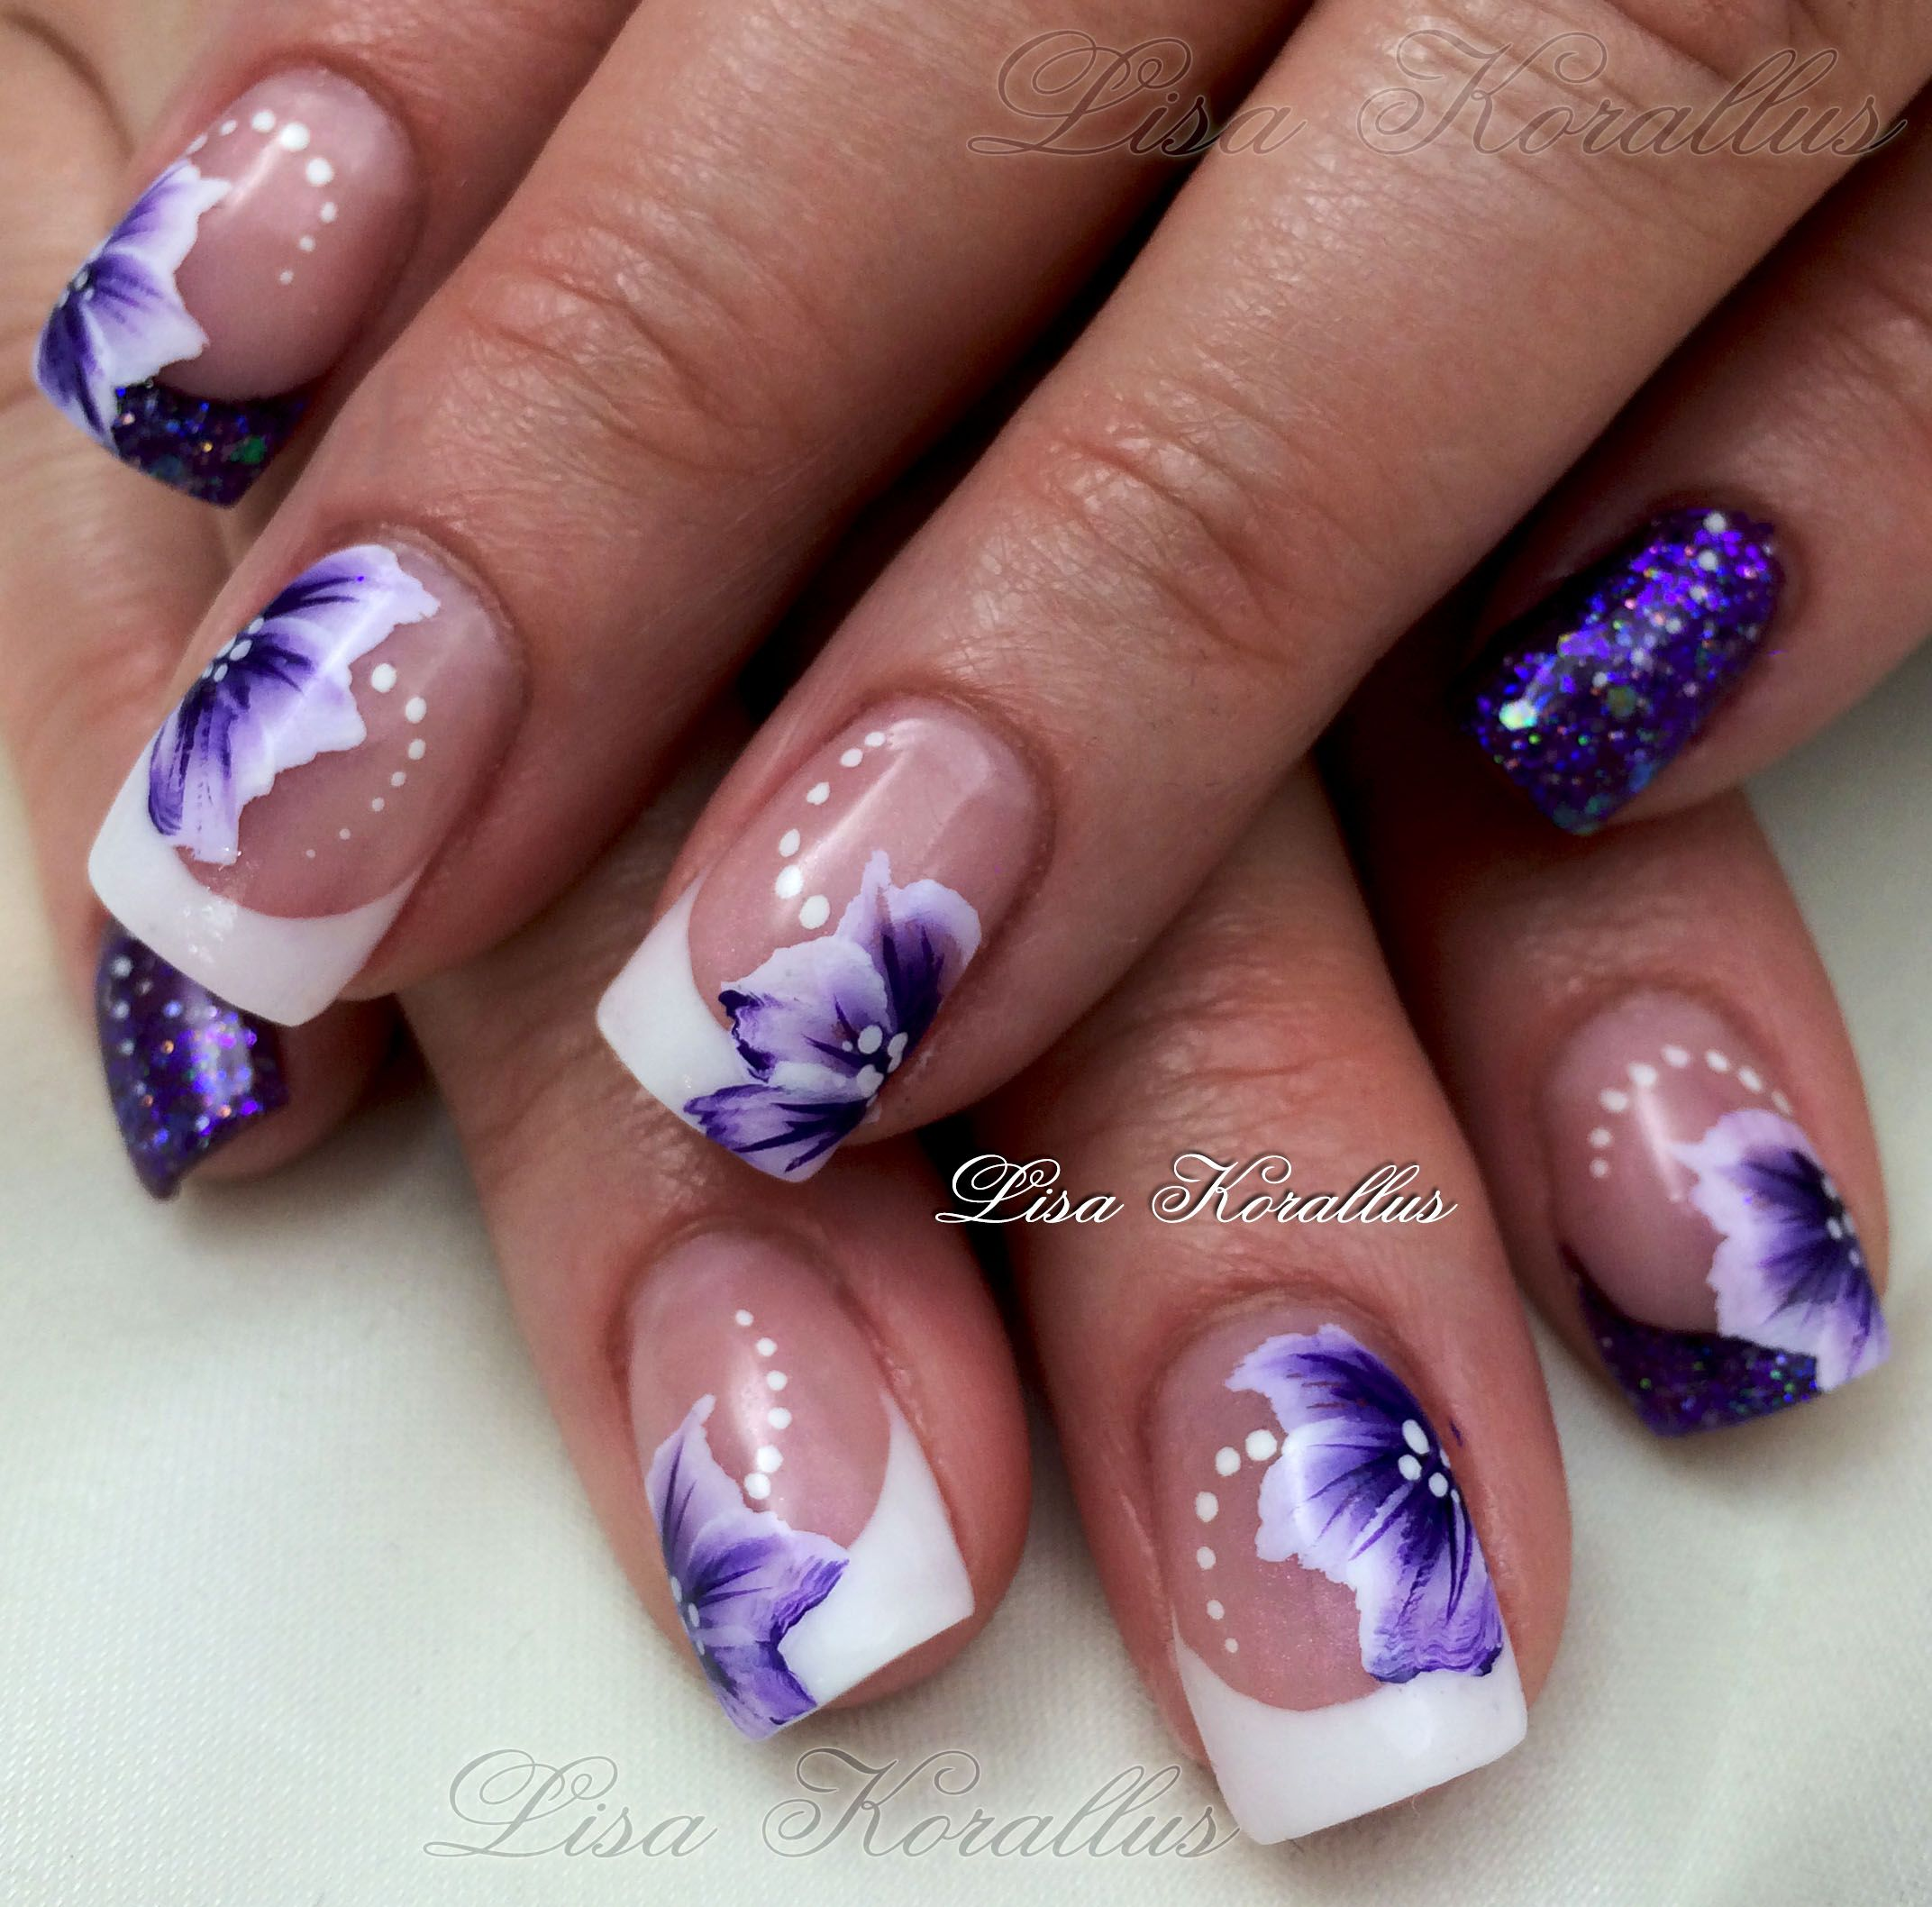 Gel Overlay With Hand Painted Flowers Floral Nail Designs Nail Art Designs Nail Designs